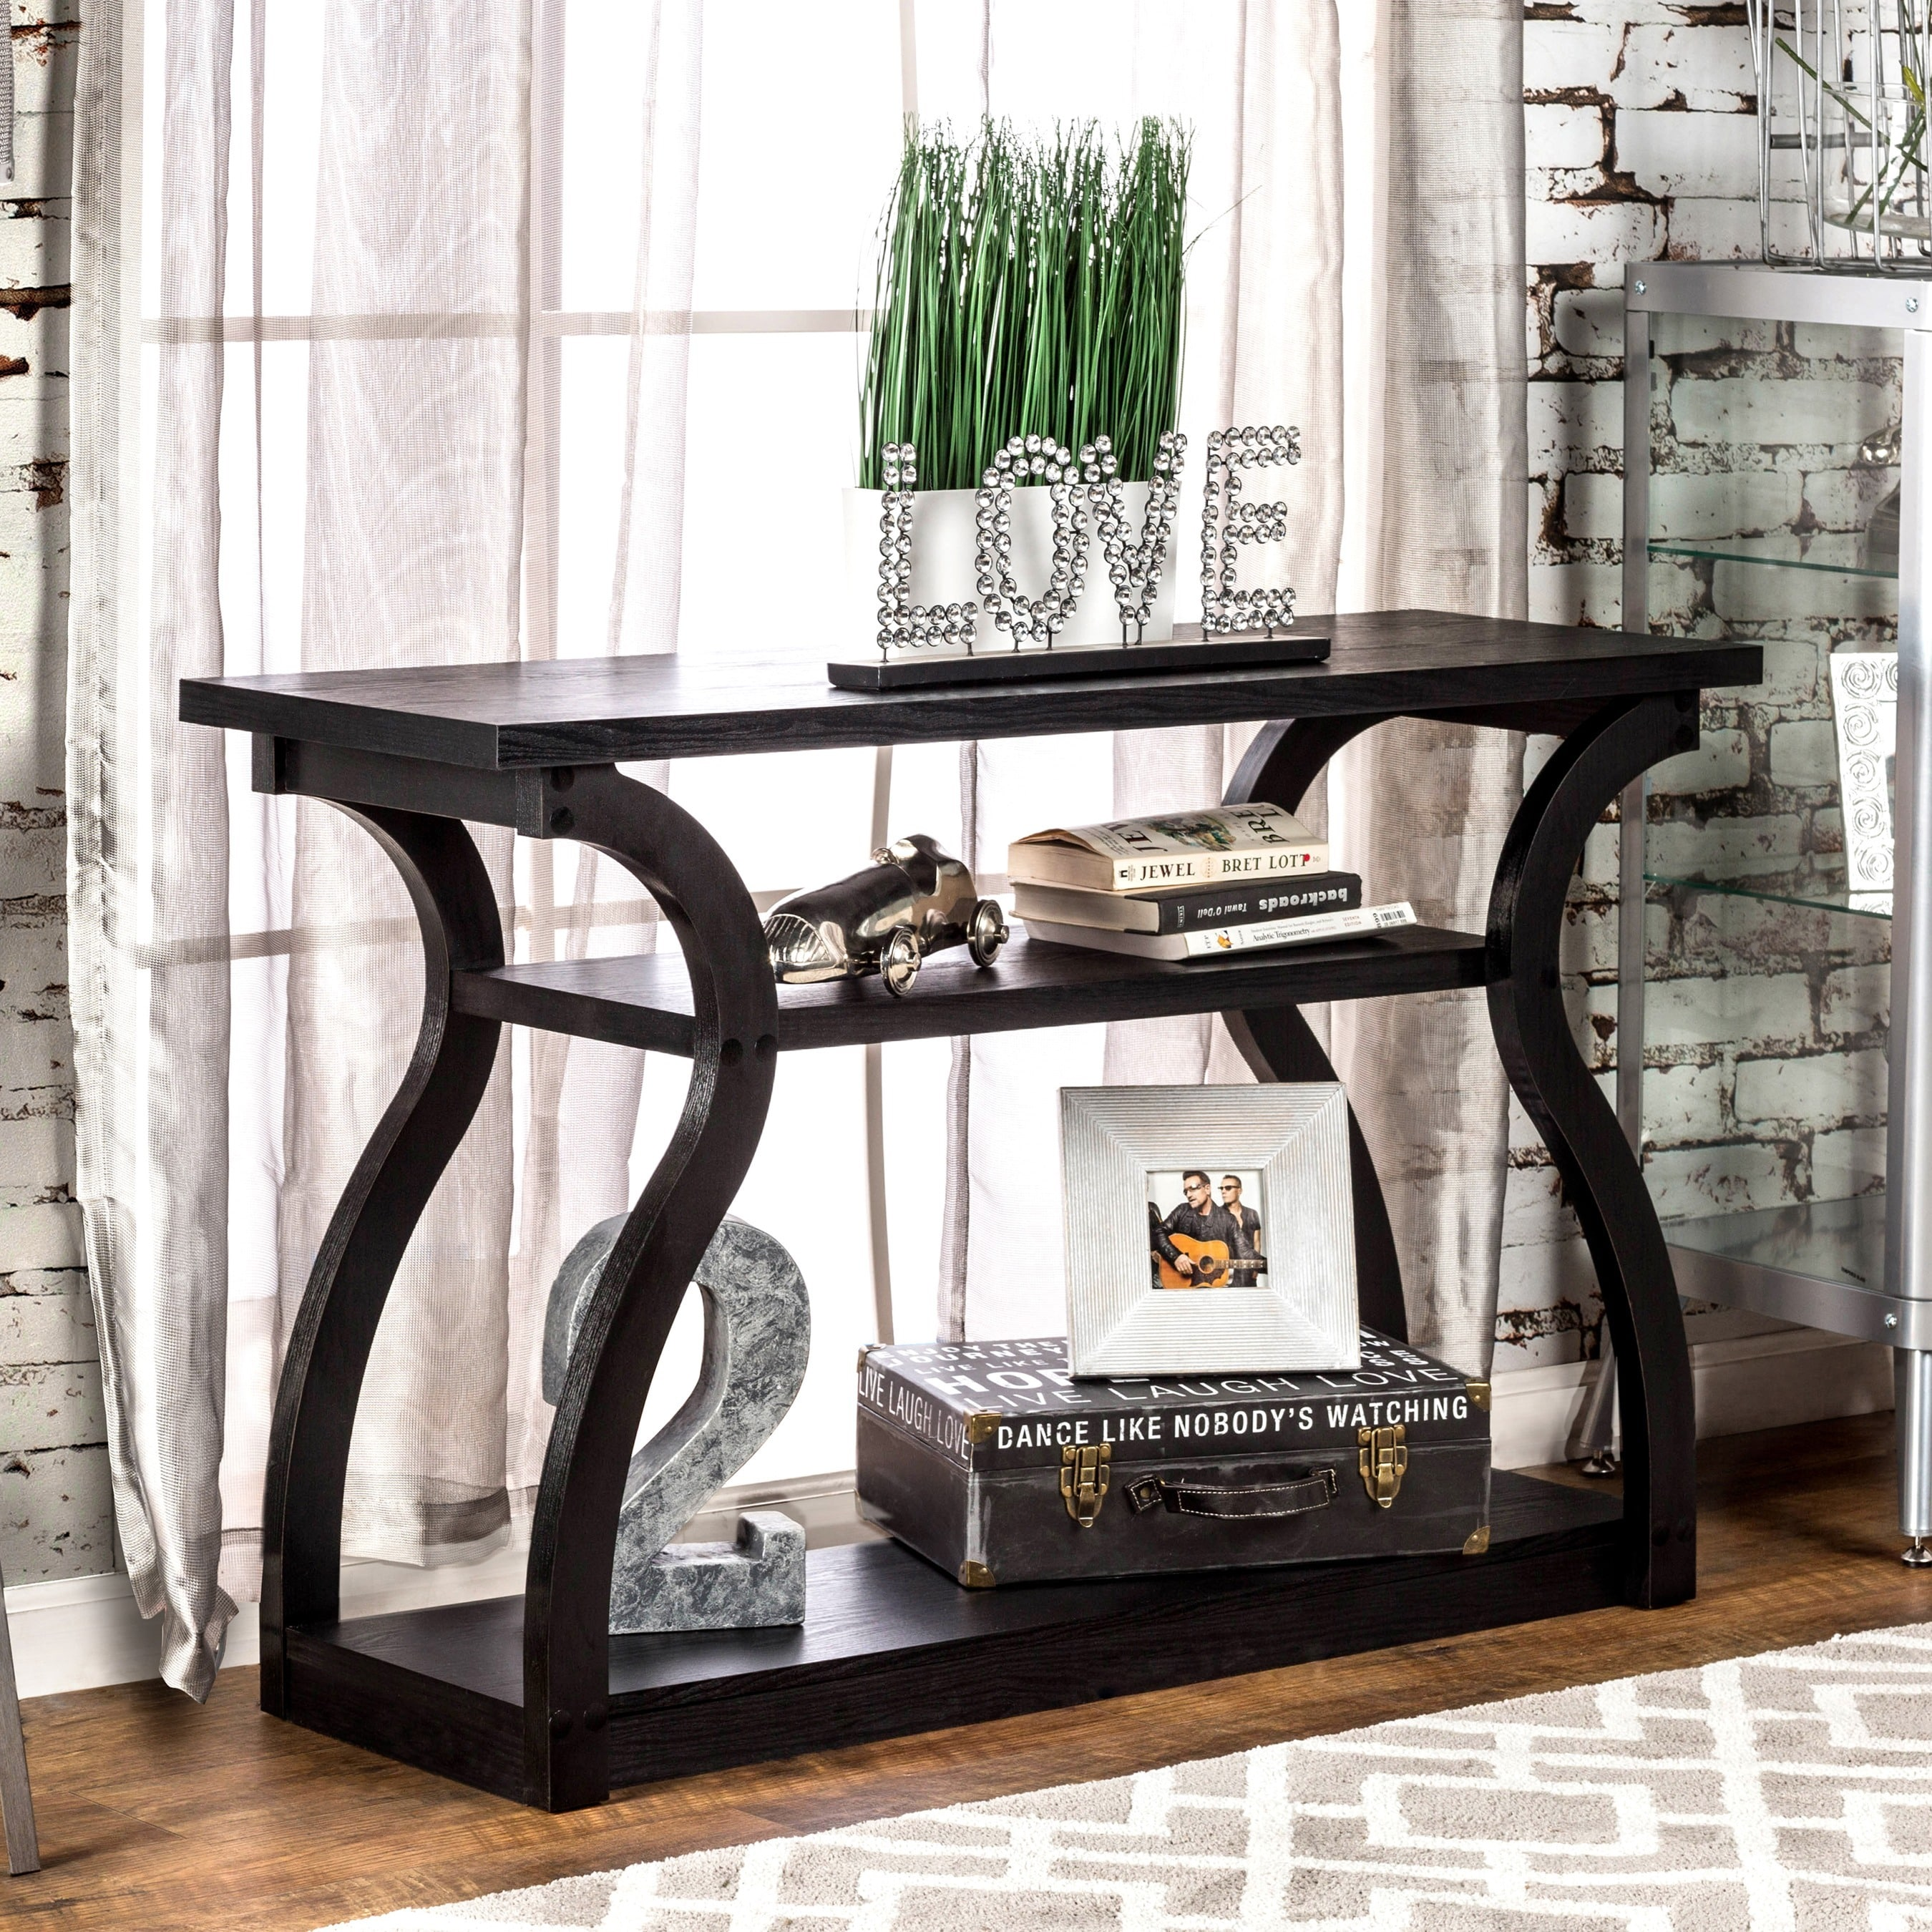 console tables for entryway hallway accent sofa shelf modern long furniture america sara black finish table kitchen chairs navy end piece coffee marble top dining set nautical